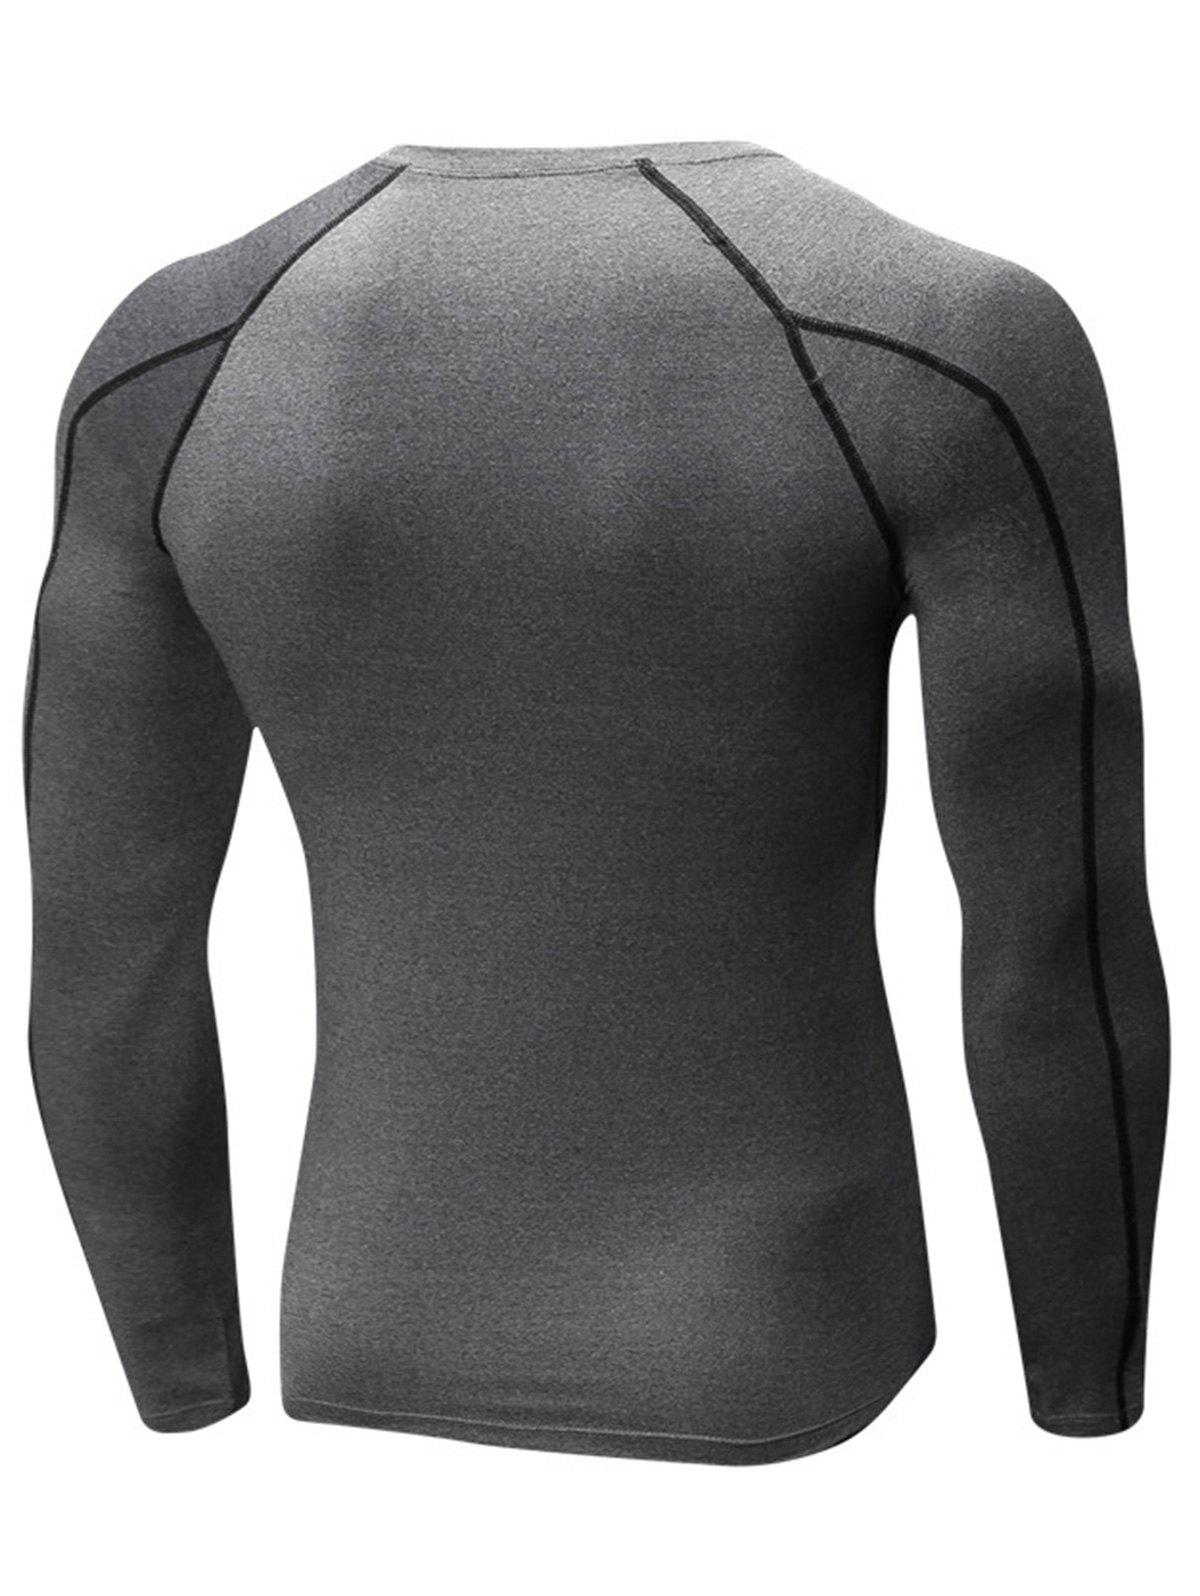 Stretchy Quick Dry Suture Long Sleeve T-shirt - GRAY 2XL